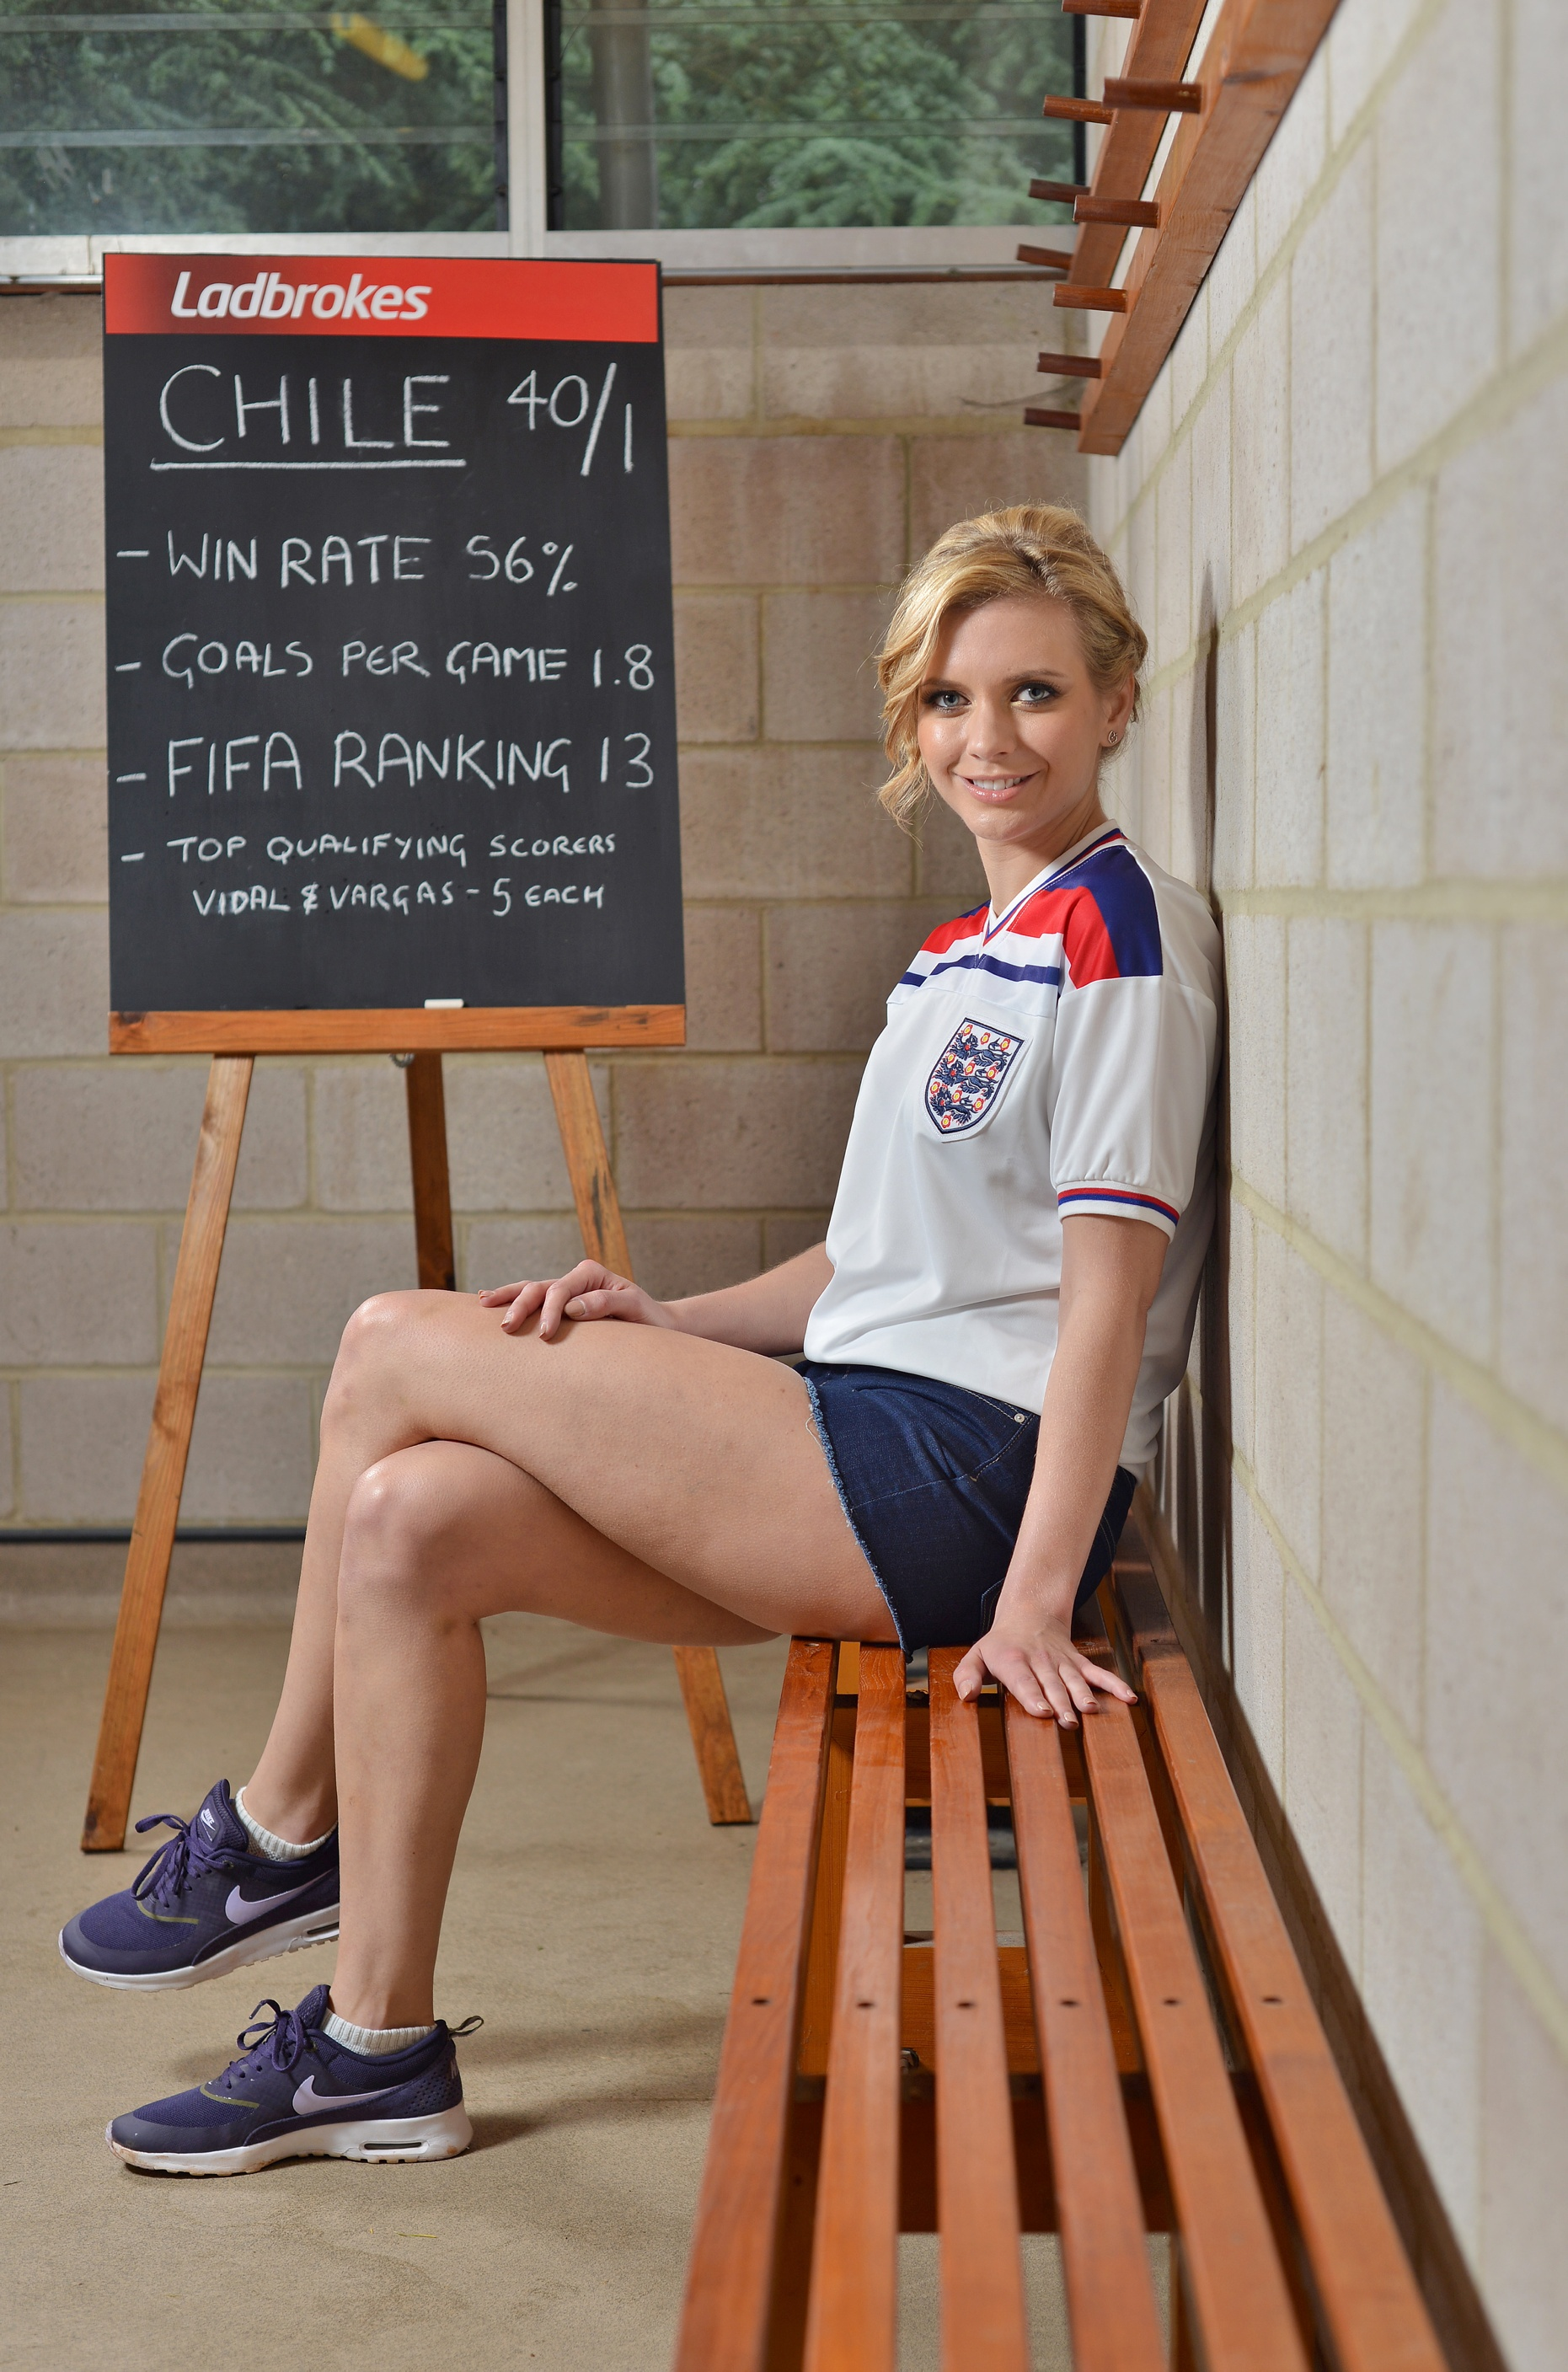 "5 June 2014: ""Football fanatic, Oxbridge graduate and professional number cruncher Rachel Riley unveils who she thinks will win this year's World Cup in Brazil. Betting experts Ladbrokes, challenged Rachel to pore over historical World Cup data and use statistics to pinpoint this year's potential winners – with the stats unexpectedly indicating 40/1 outsiders Chile as the surprise champions. The research which was a combination of mathematical logic and human reasoning analysed a range of variable factors including goal averages, goal scorers, win rates, climate, geography and all the pre-tournament hype and expectation."" ENDS For more information on the research please call Clarion Communications on 0207 479 0910 or email clarion.ladbrokes@clarioncomms.co.uk"